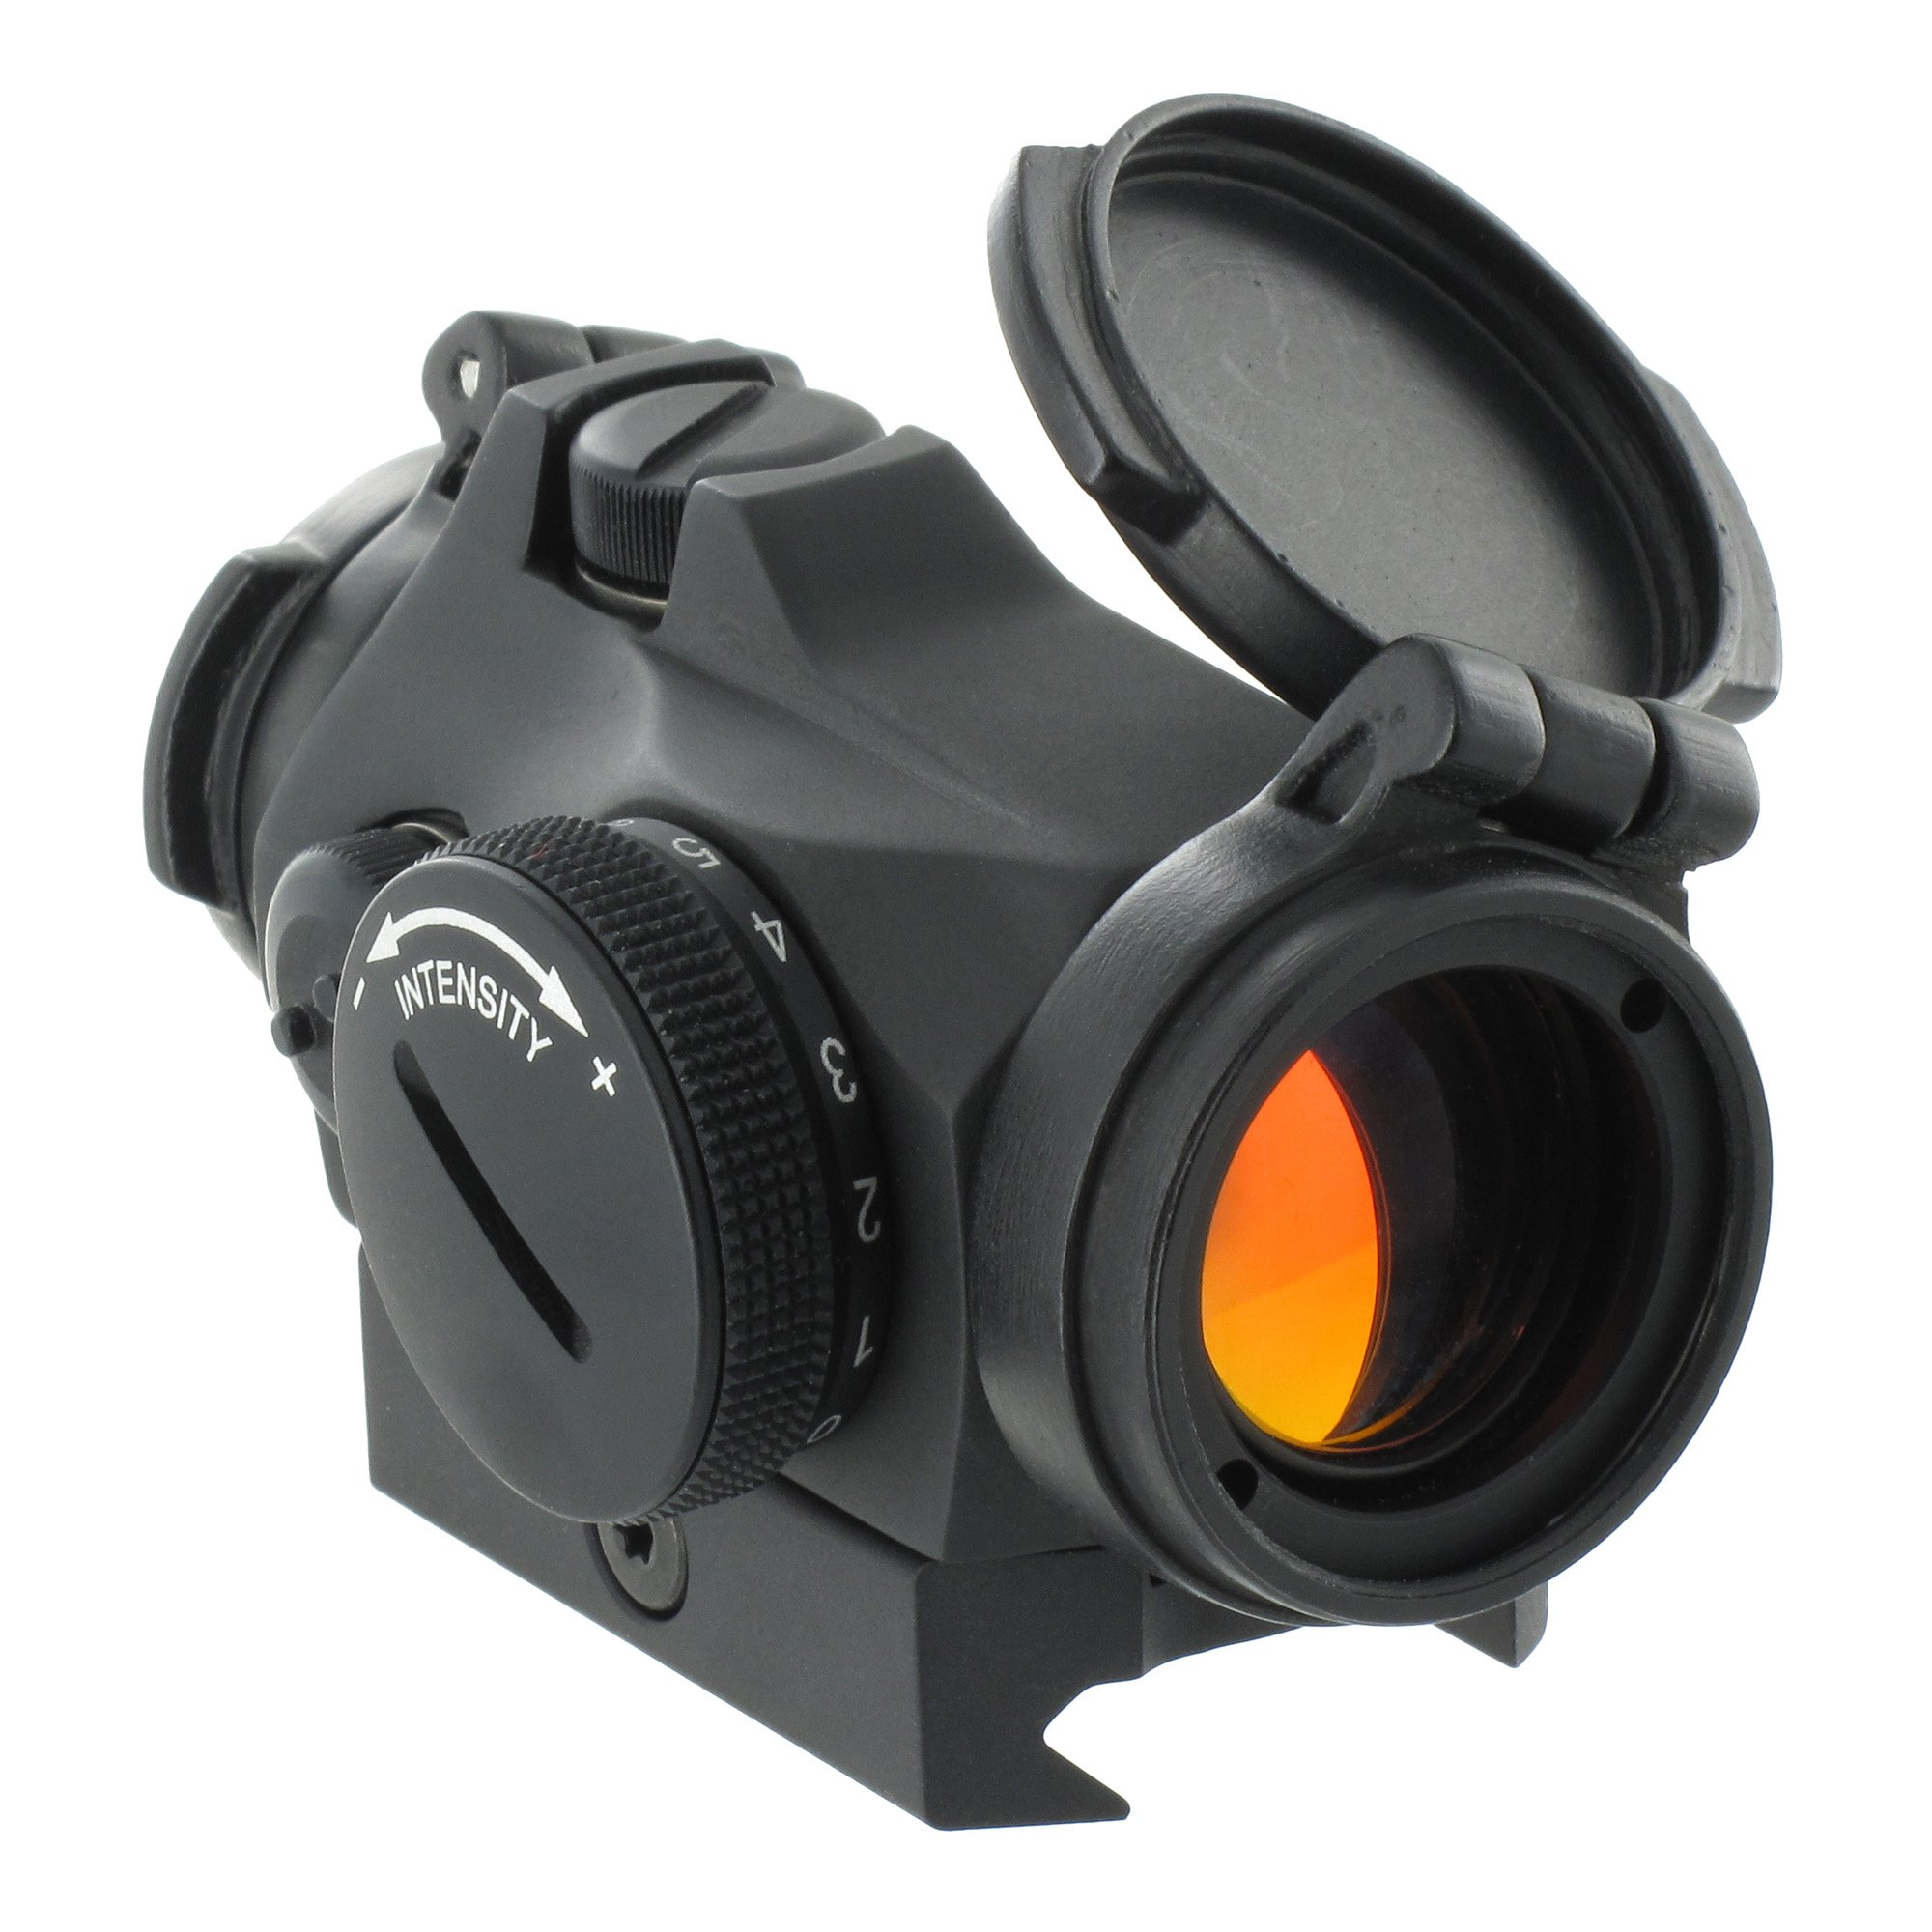 Aimpoint Micro T 2 Optic W Standard Mount Guns Airforce Navy